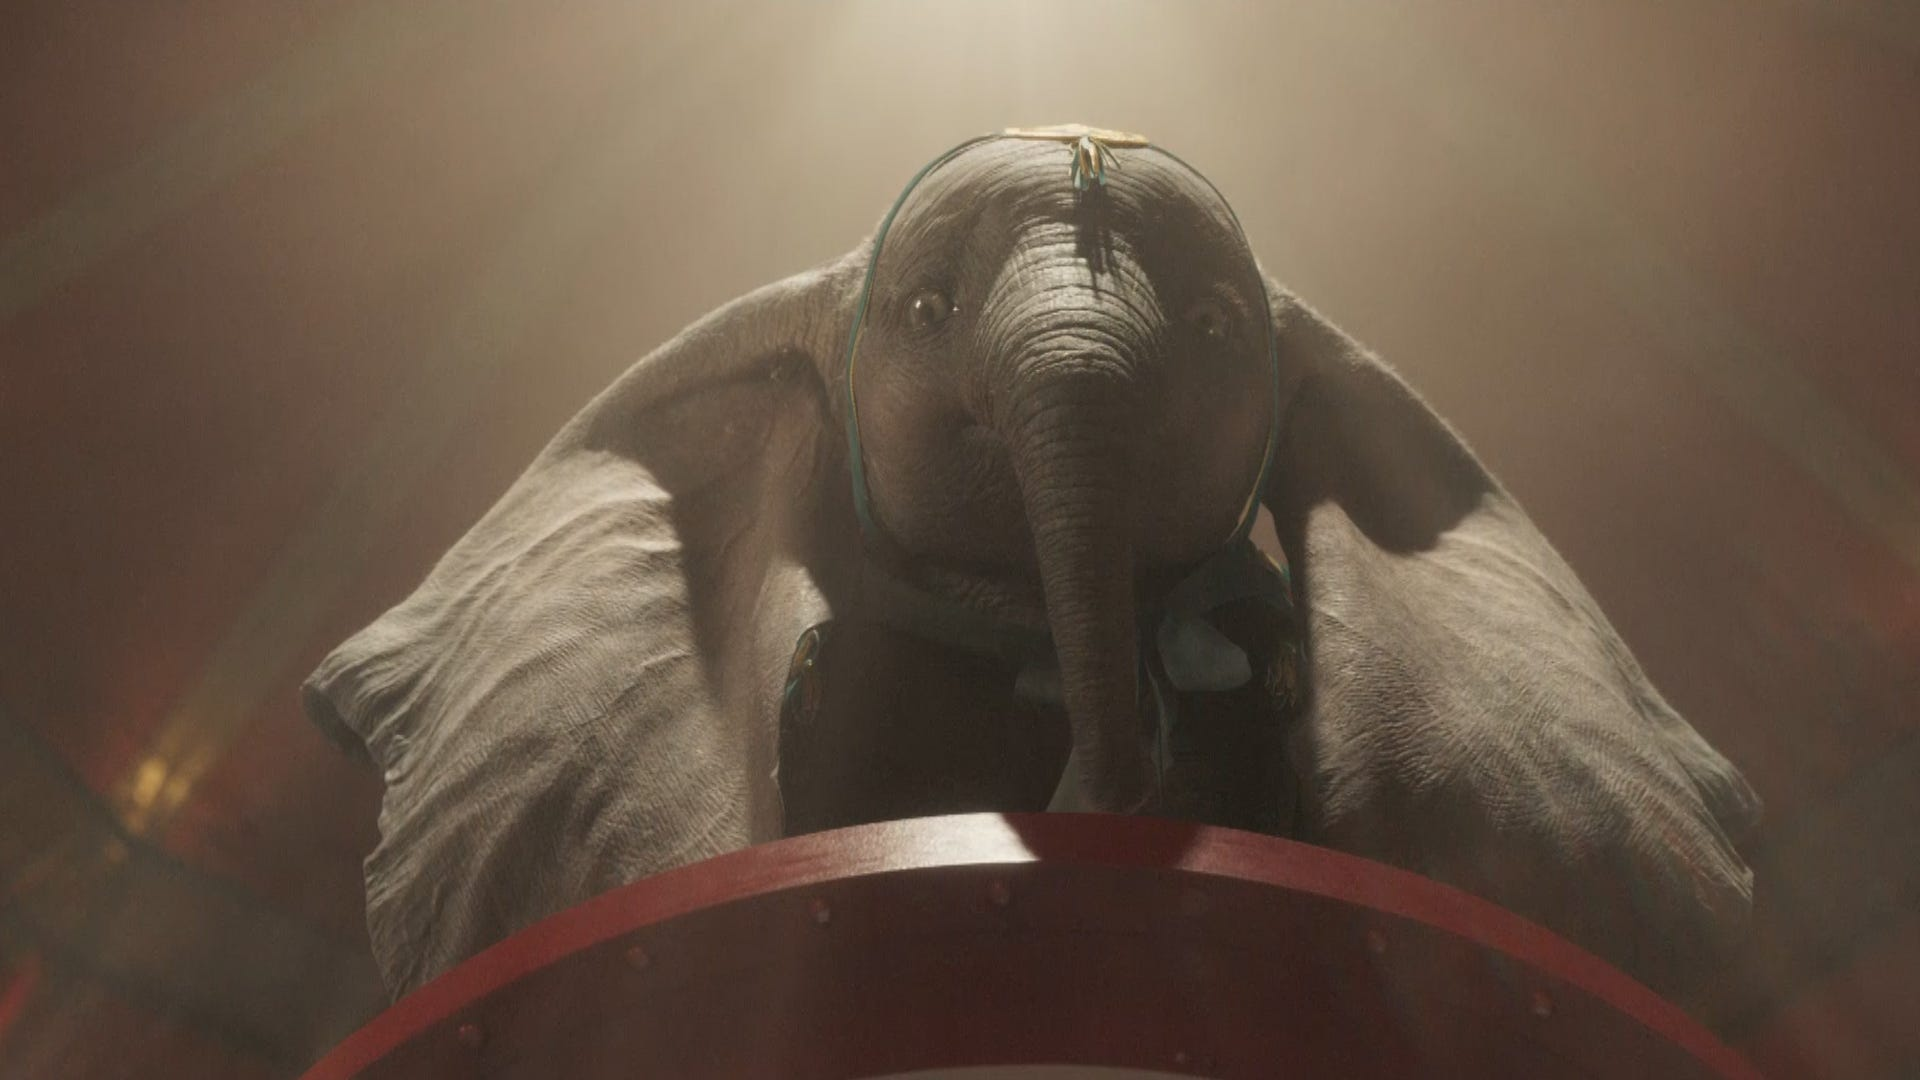 'Dumbo' soars to new heights in Disney's live-action remake